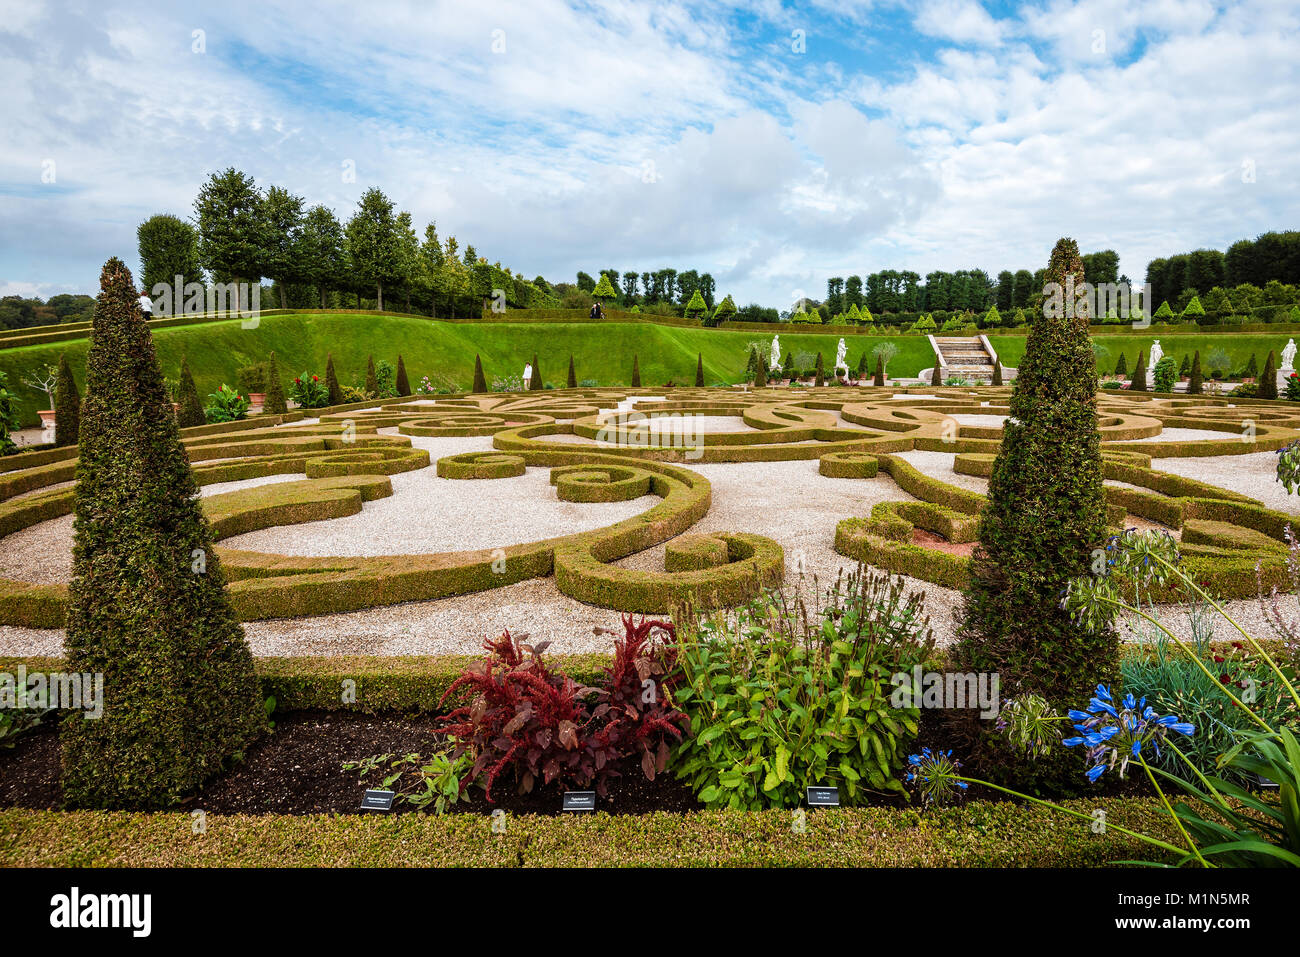 Hillerod, Denmark - September, 23th, 2015. Royal park near Frederiksborg castle. Baroque garden with green trees, - Stock Image